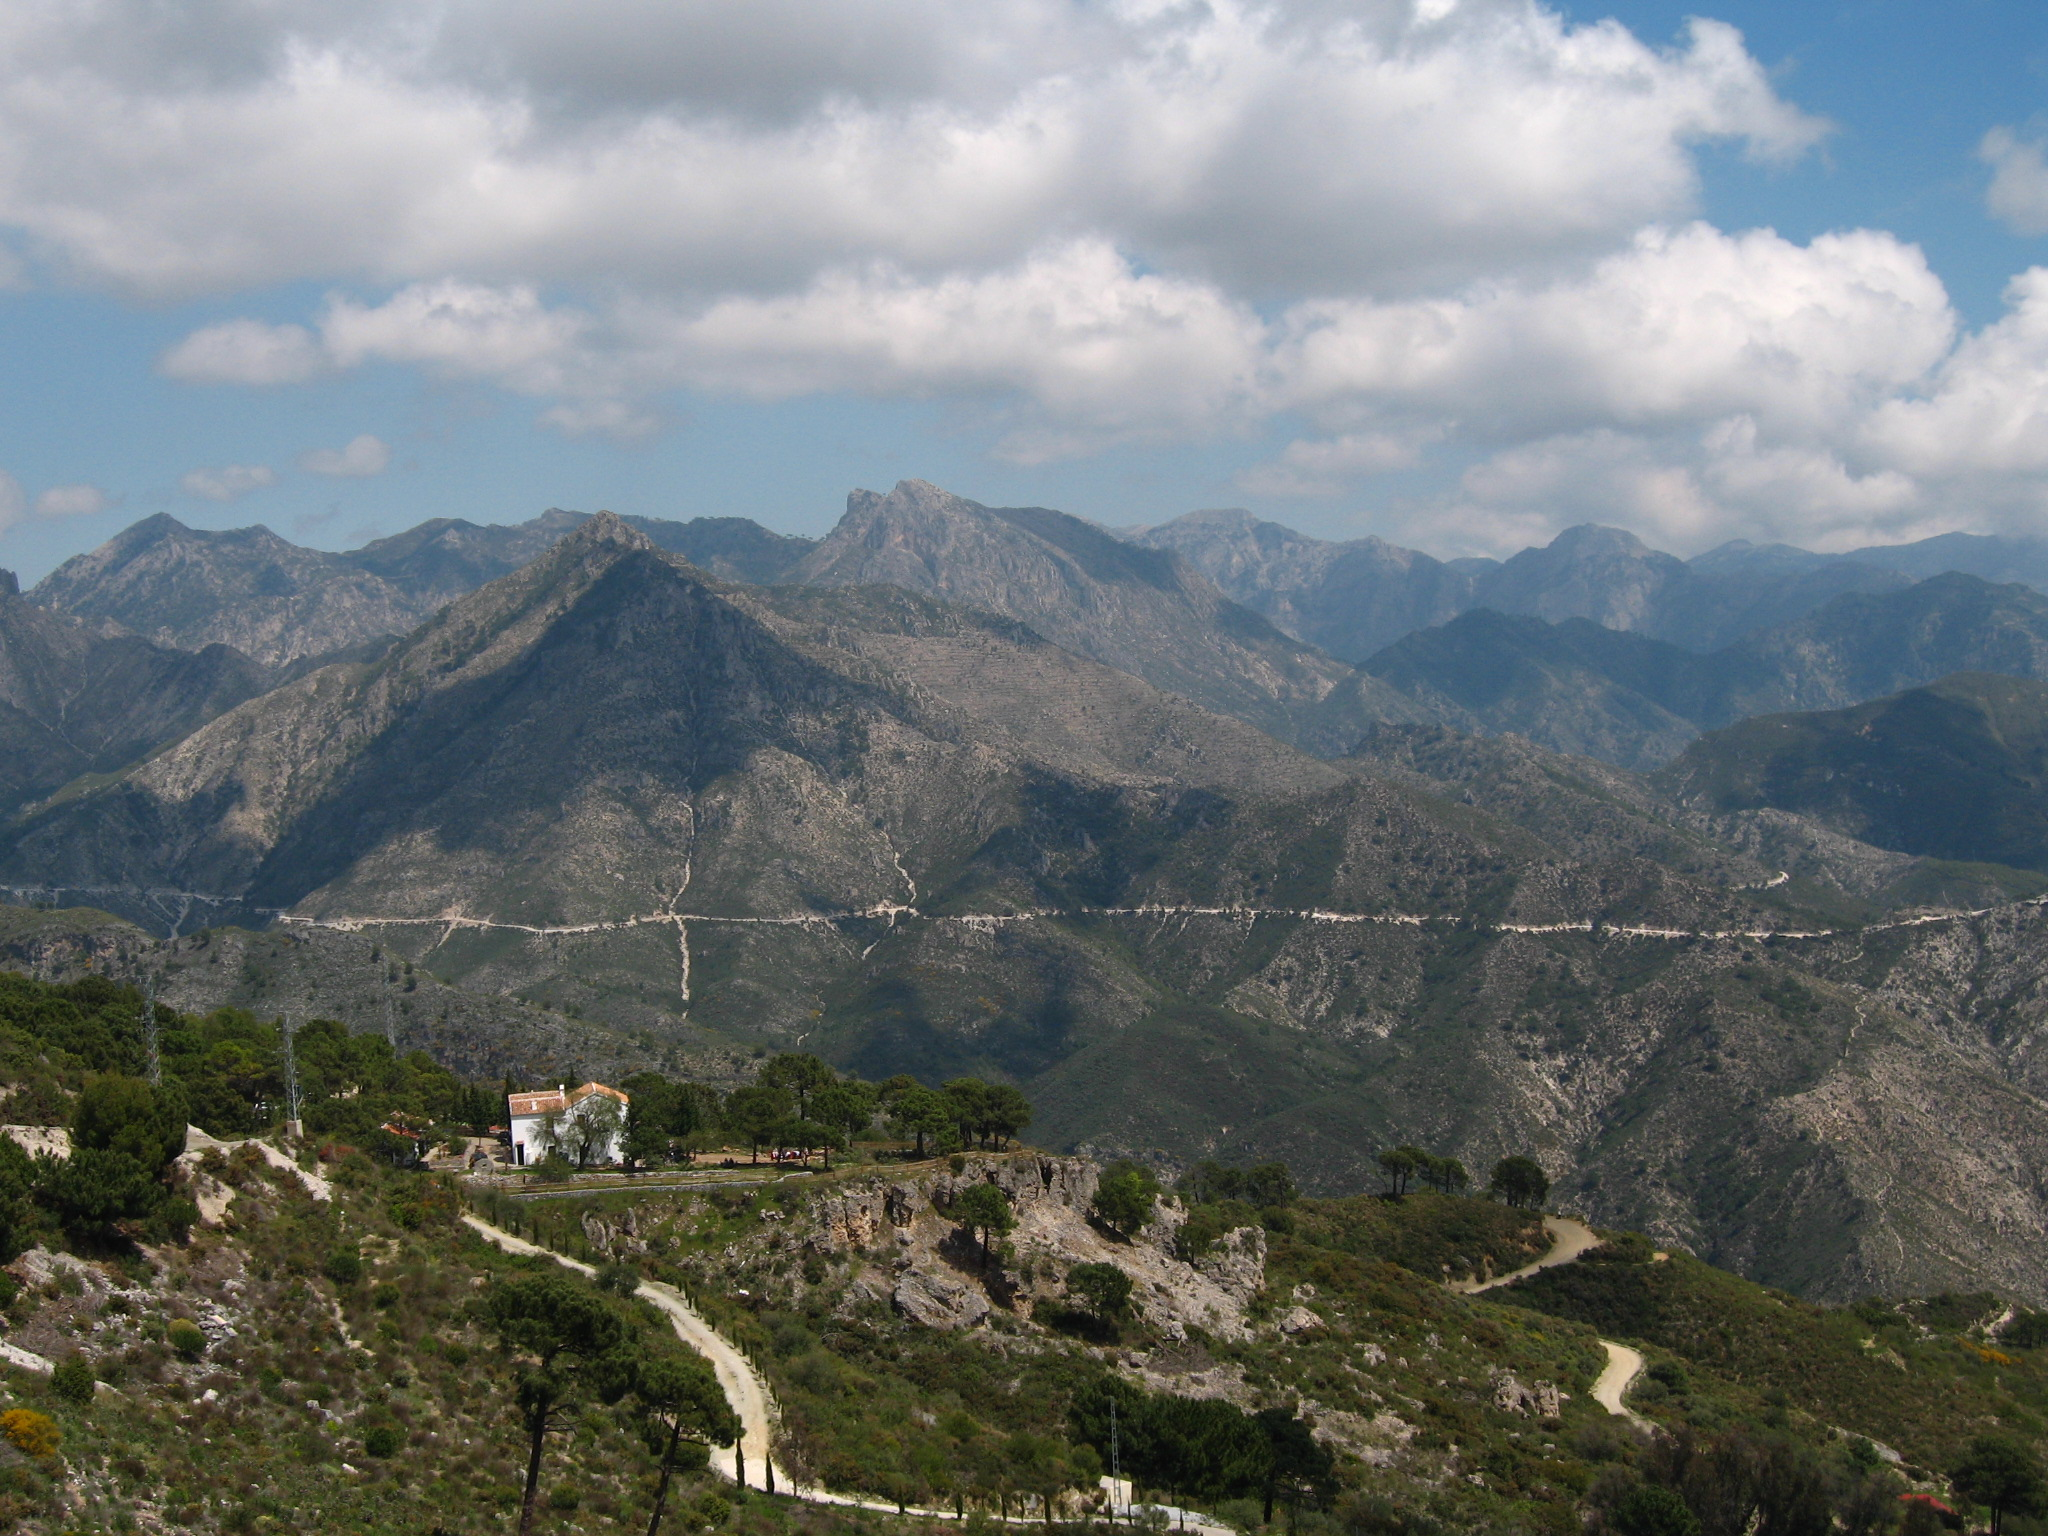 IMG_0697 In the mountains near Competa.jpg